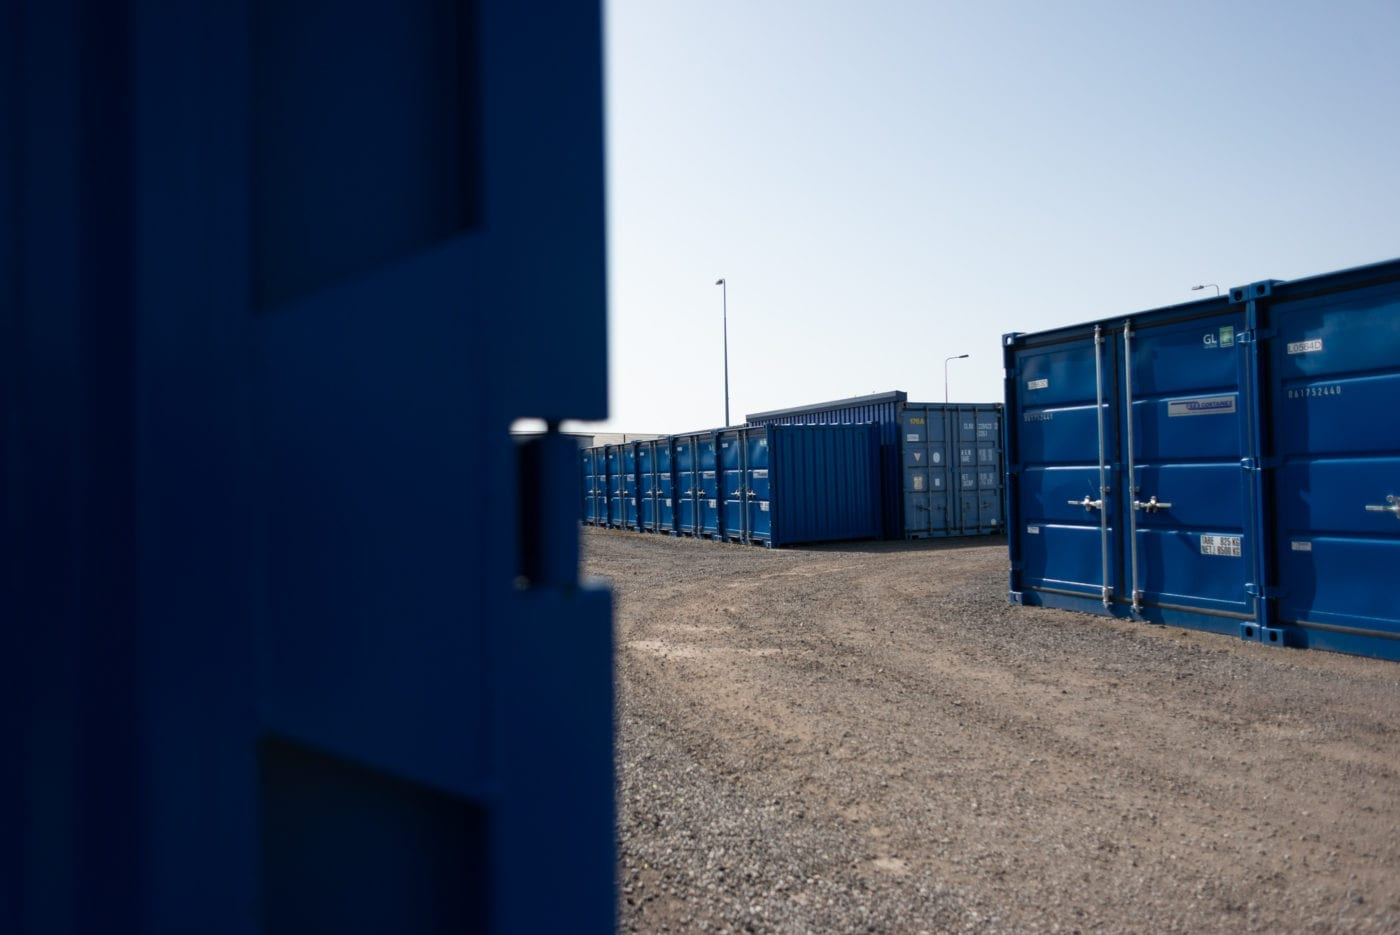 blue self storage secures planning permission to build a new site in Llanishen, Cardiff